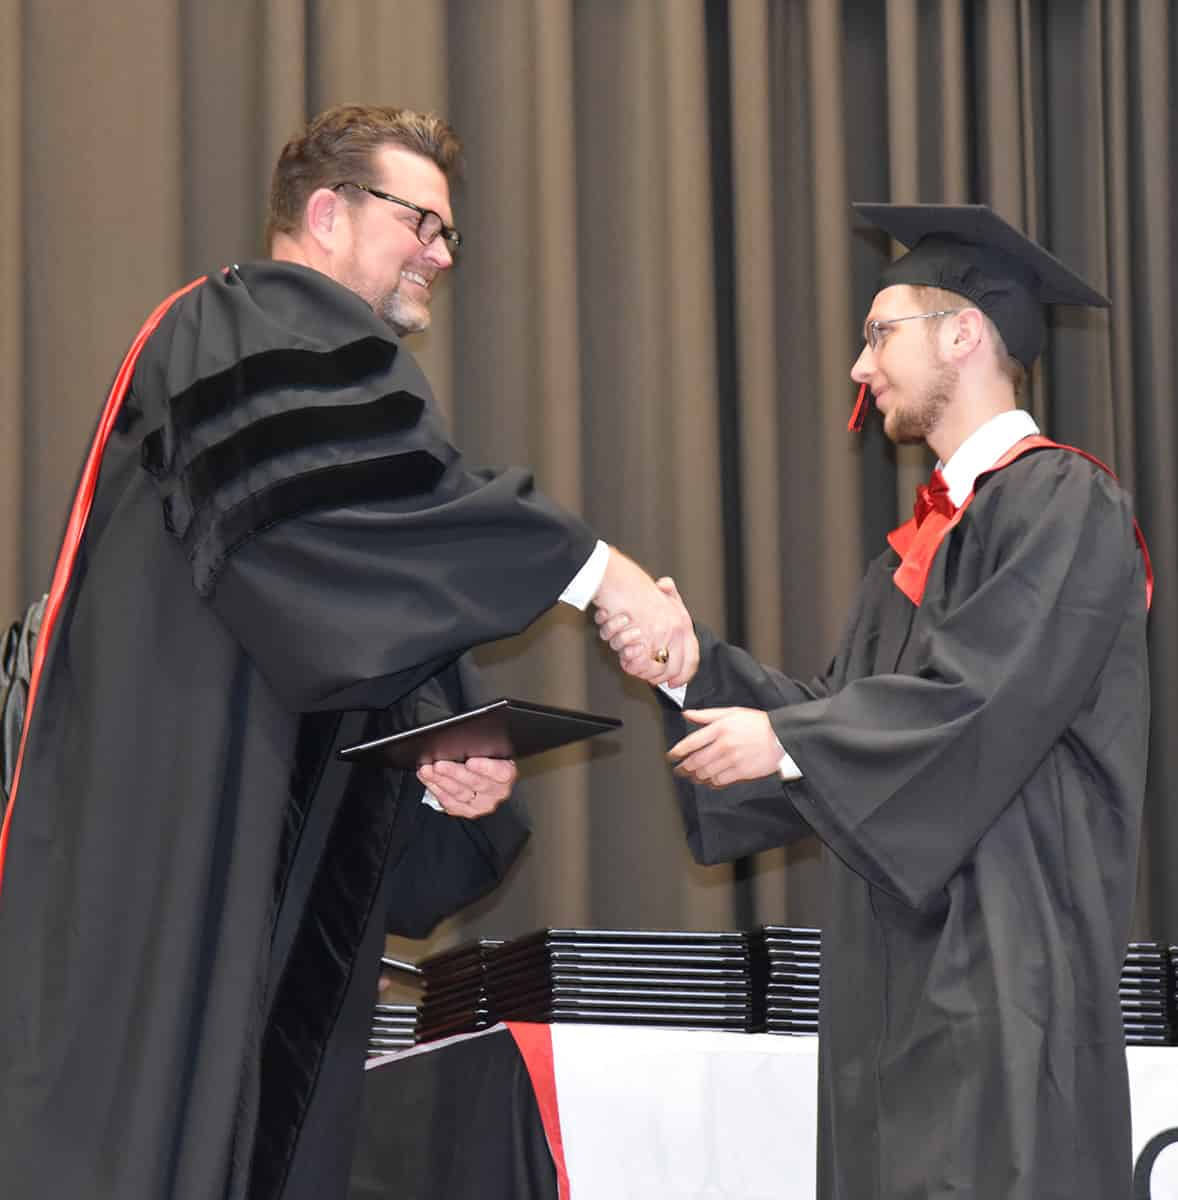 South Georgia Technical College President Dr. John Watford is shown above (left) presenting a diploma to Levi Cowan of Americus who earned his Associate of Applied Science degree in Computer Support Specialist and Networking Specialist.  He has also been hired in the South Georgia Technical College IT department to work in his area of study.